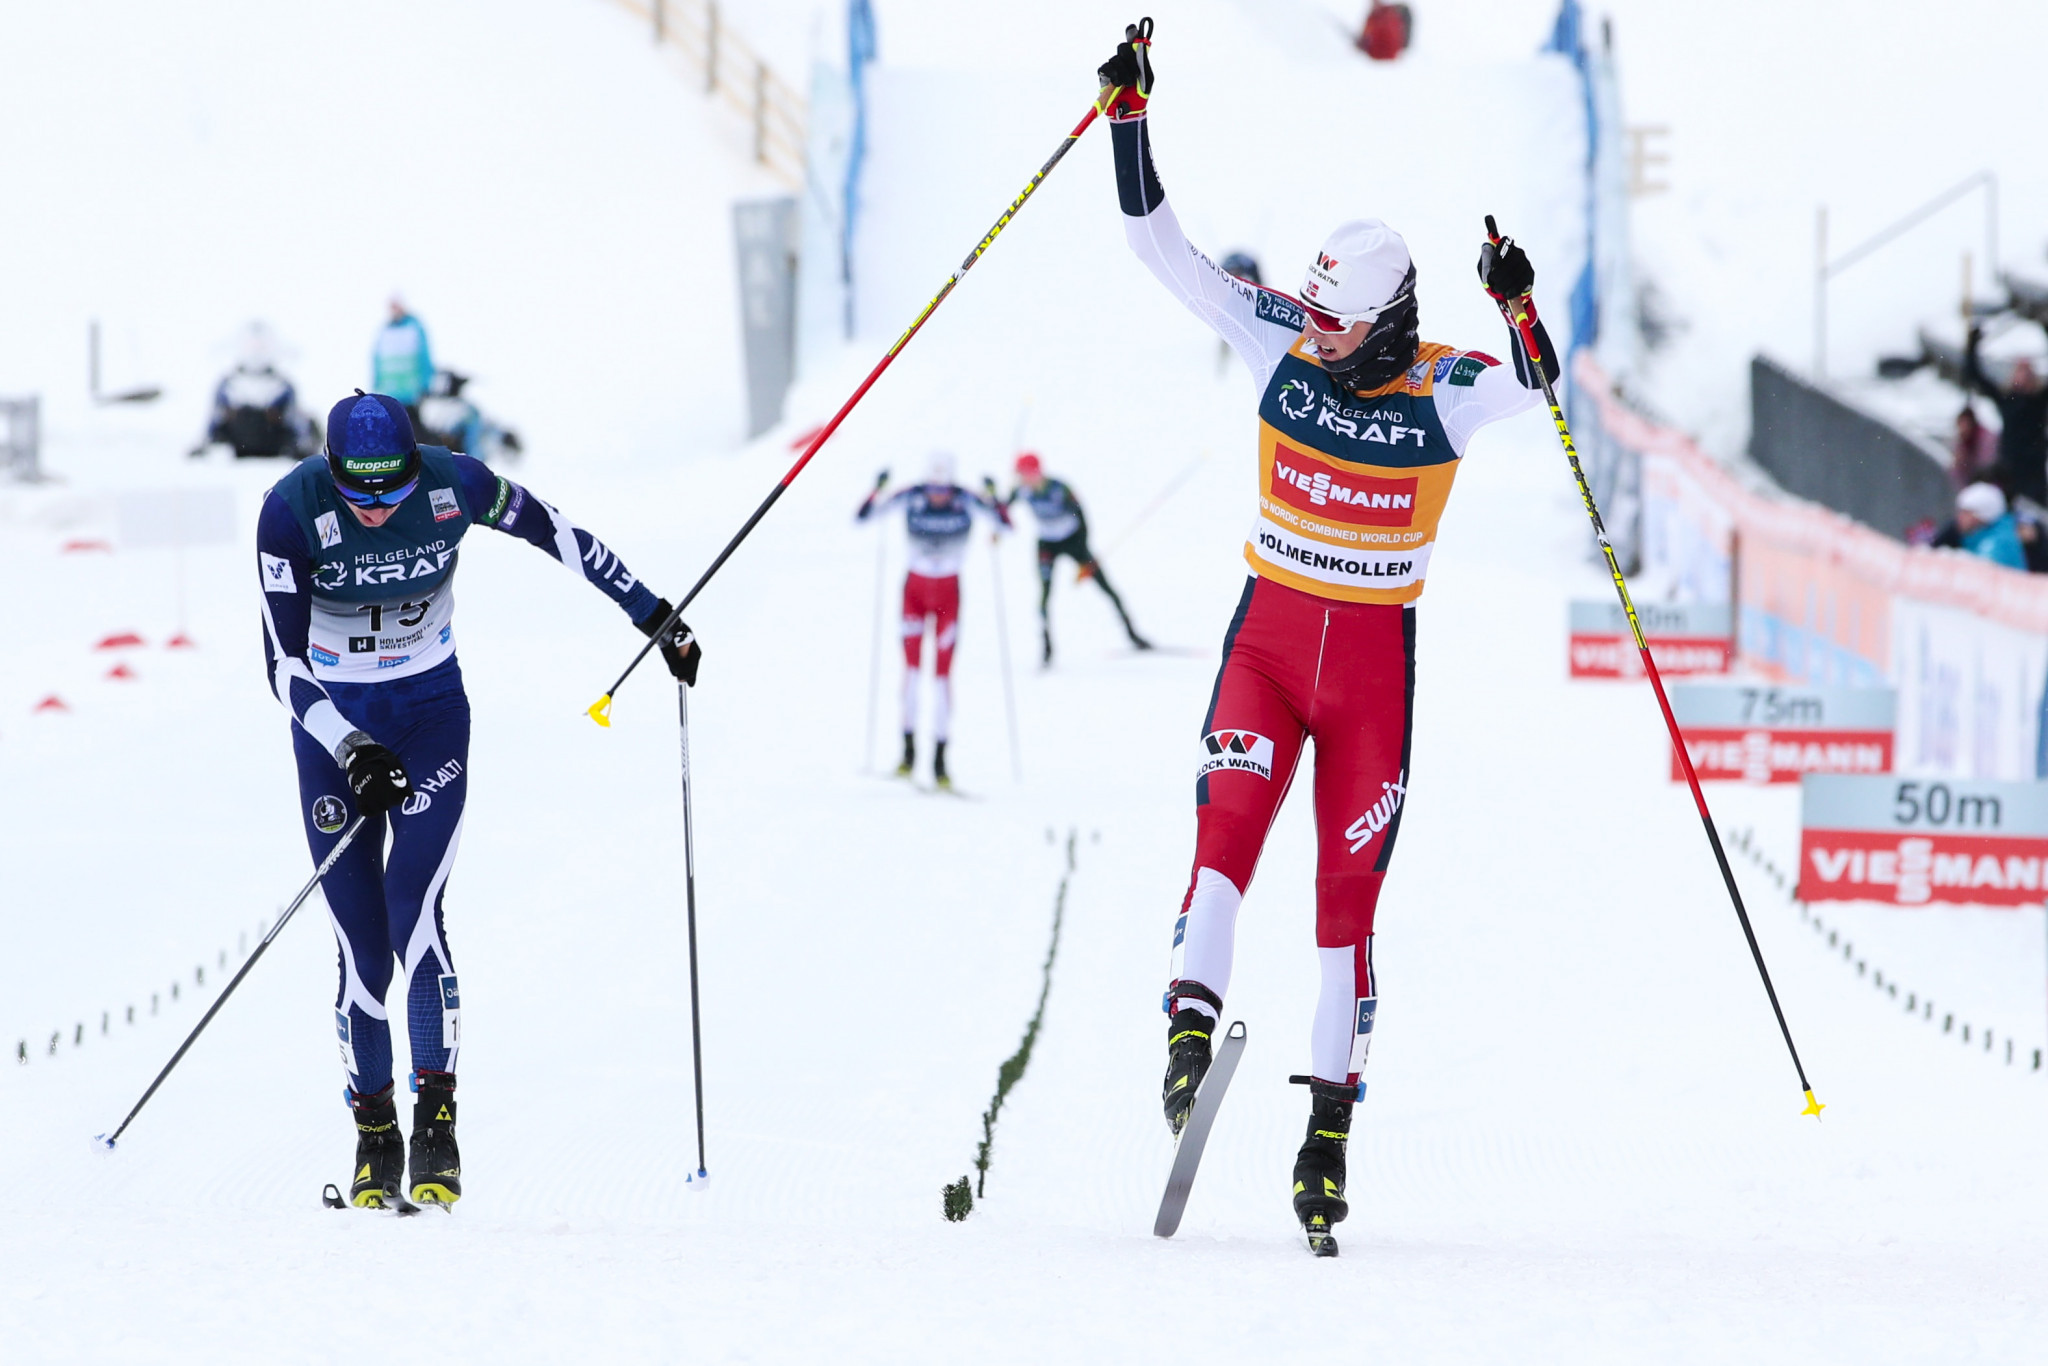 Draft calendar for 2019-2020 FIS Nordic Combined World Cup decided at annual meeting in Zürich